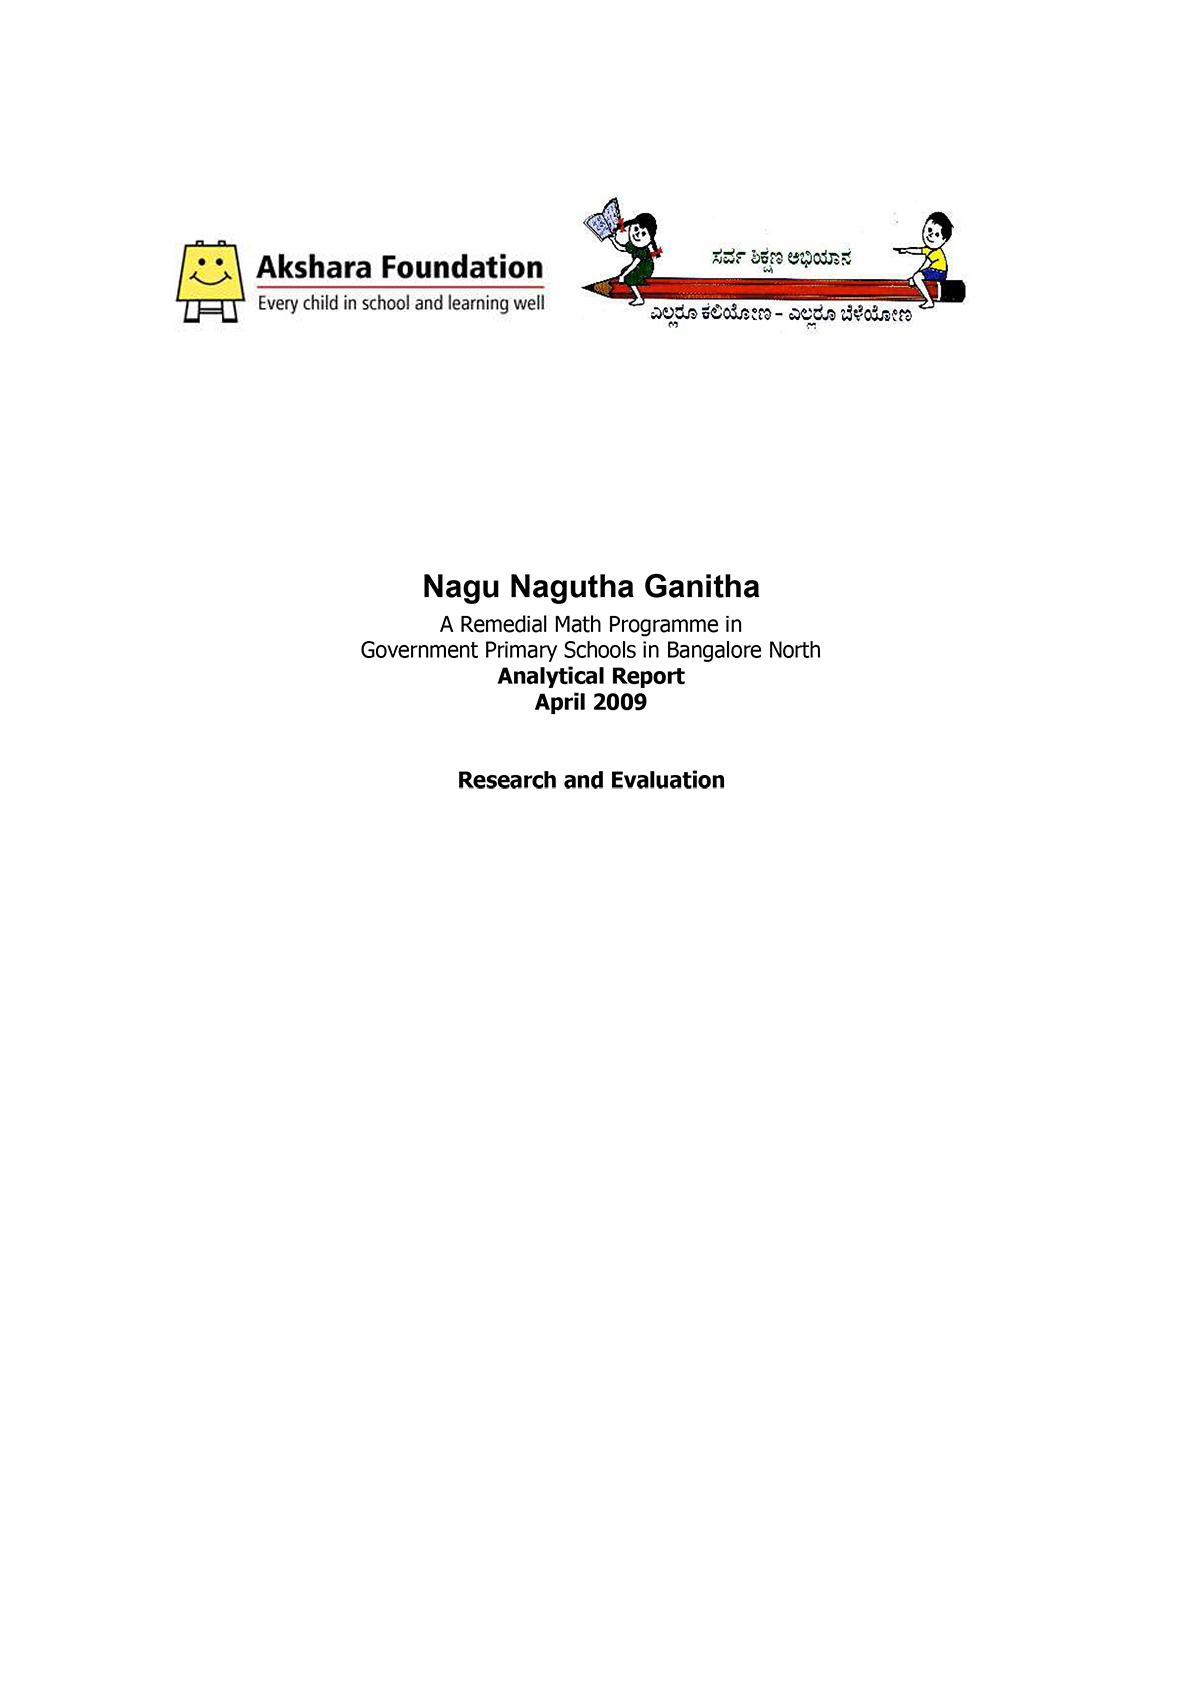 Nagu Nagutha Ganitha - A Remedial Math Programme in Government Primary Schools in Bangalore North, 2009